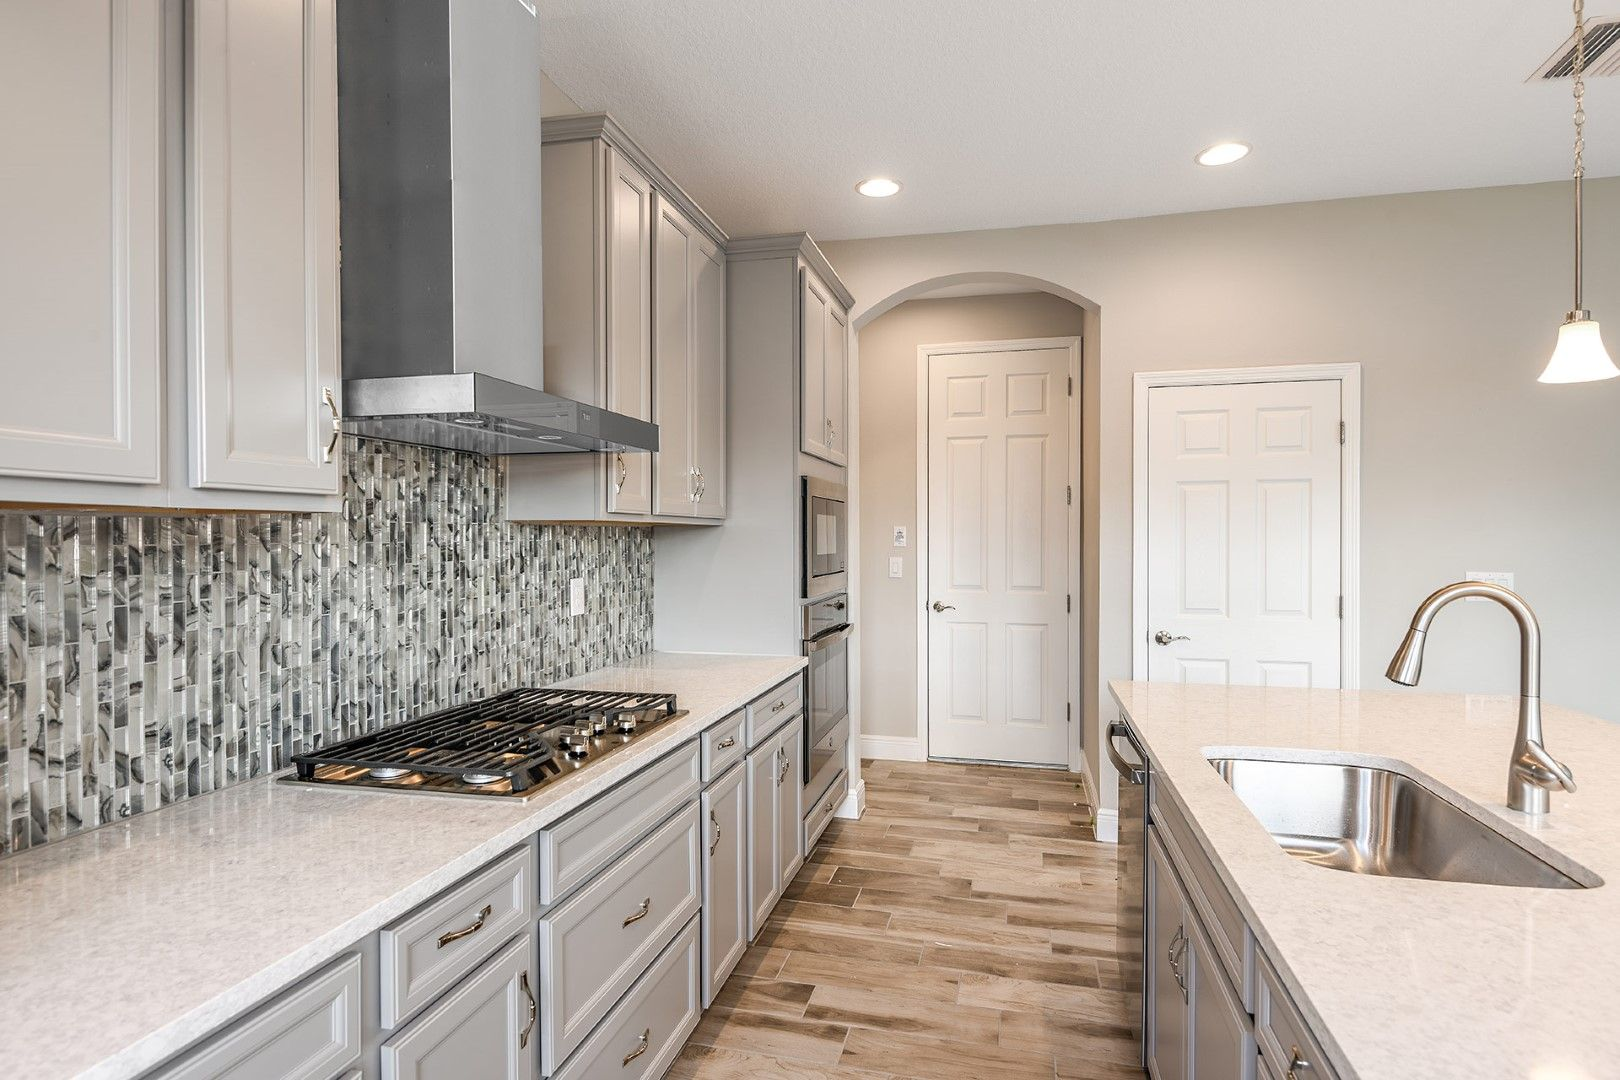 Kitchen featured in the Egret By Homes by WestBay in Tampa-St. Petersburg, FL